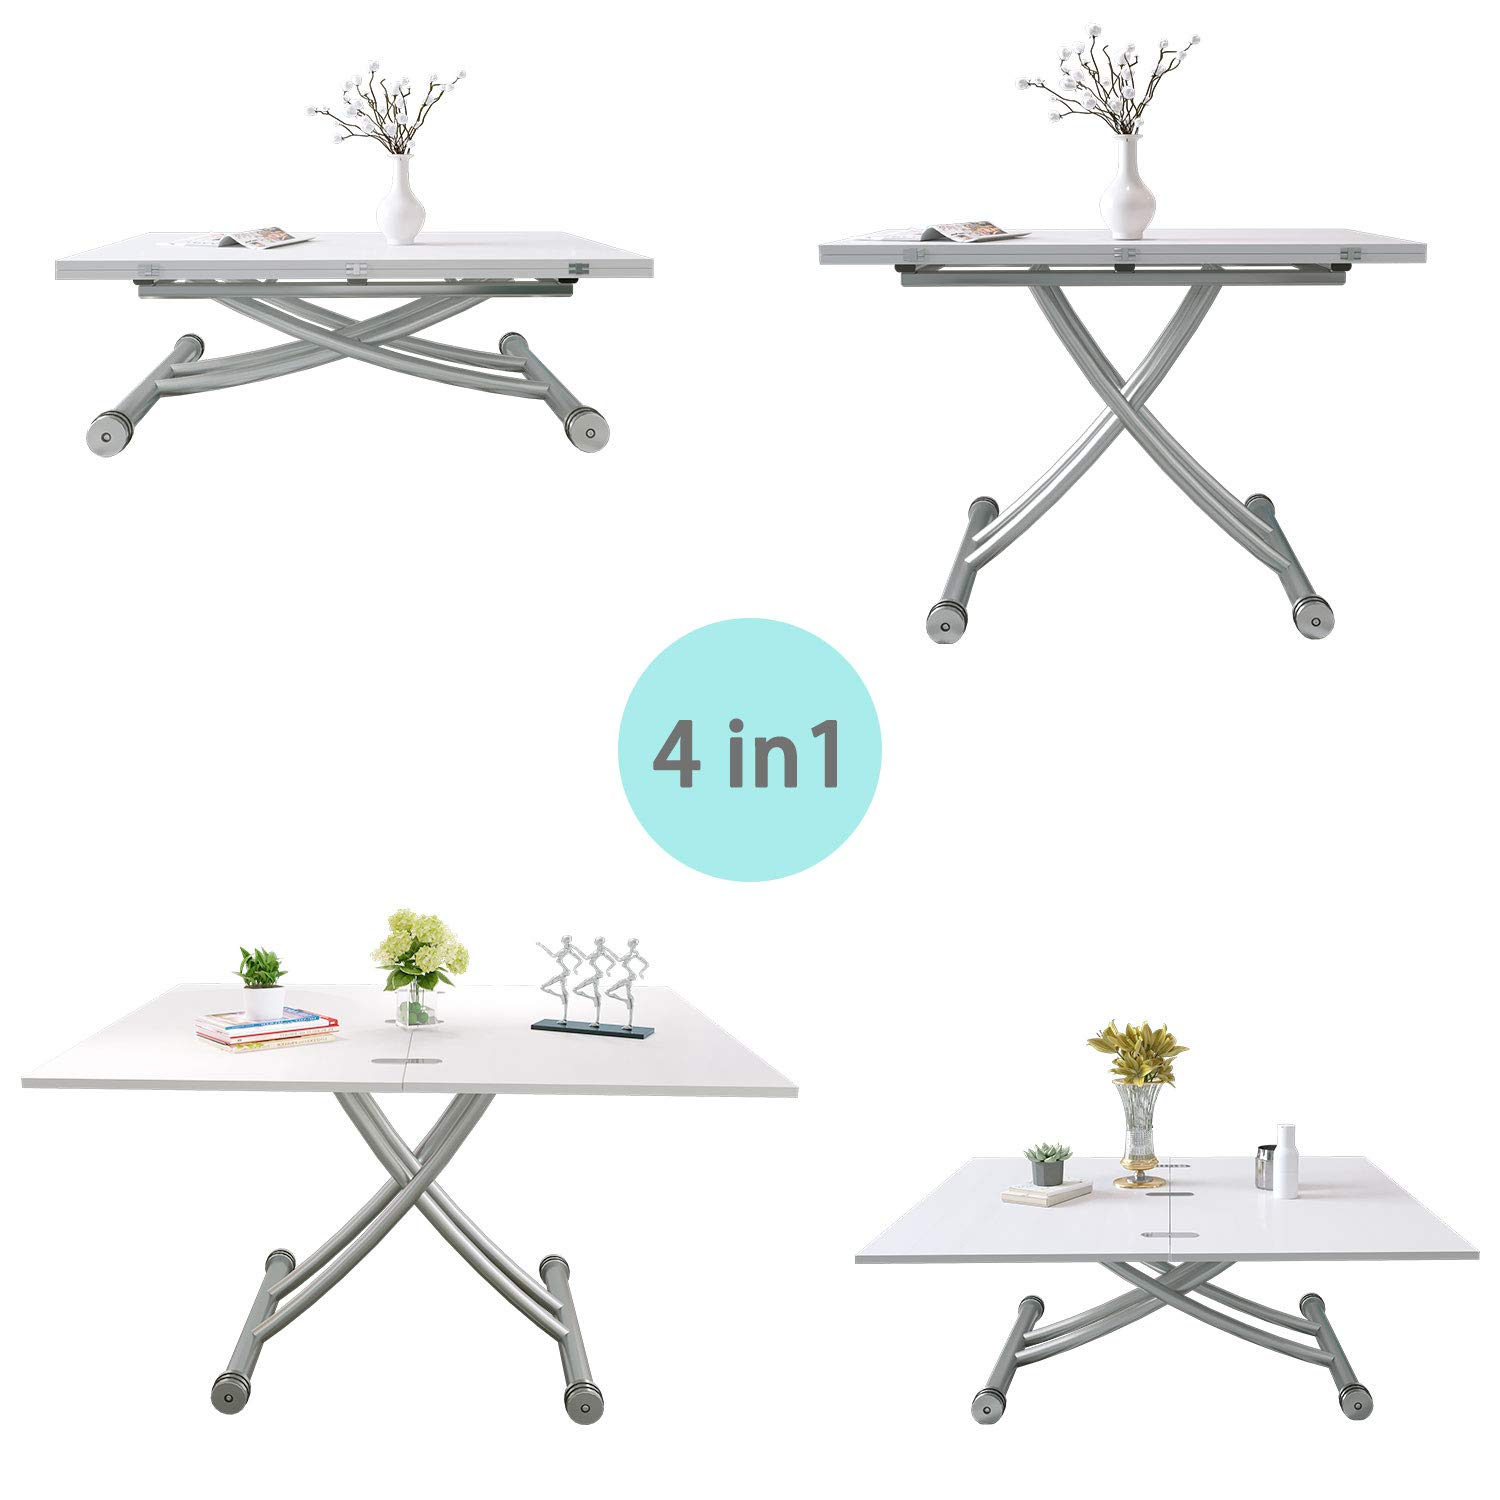 Adjustable Dining Table 4ft Folding Table Multfunctional Coffee